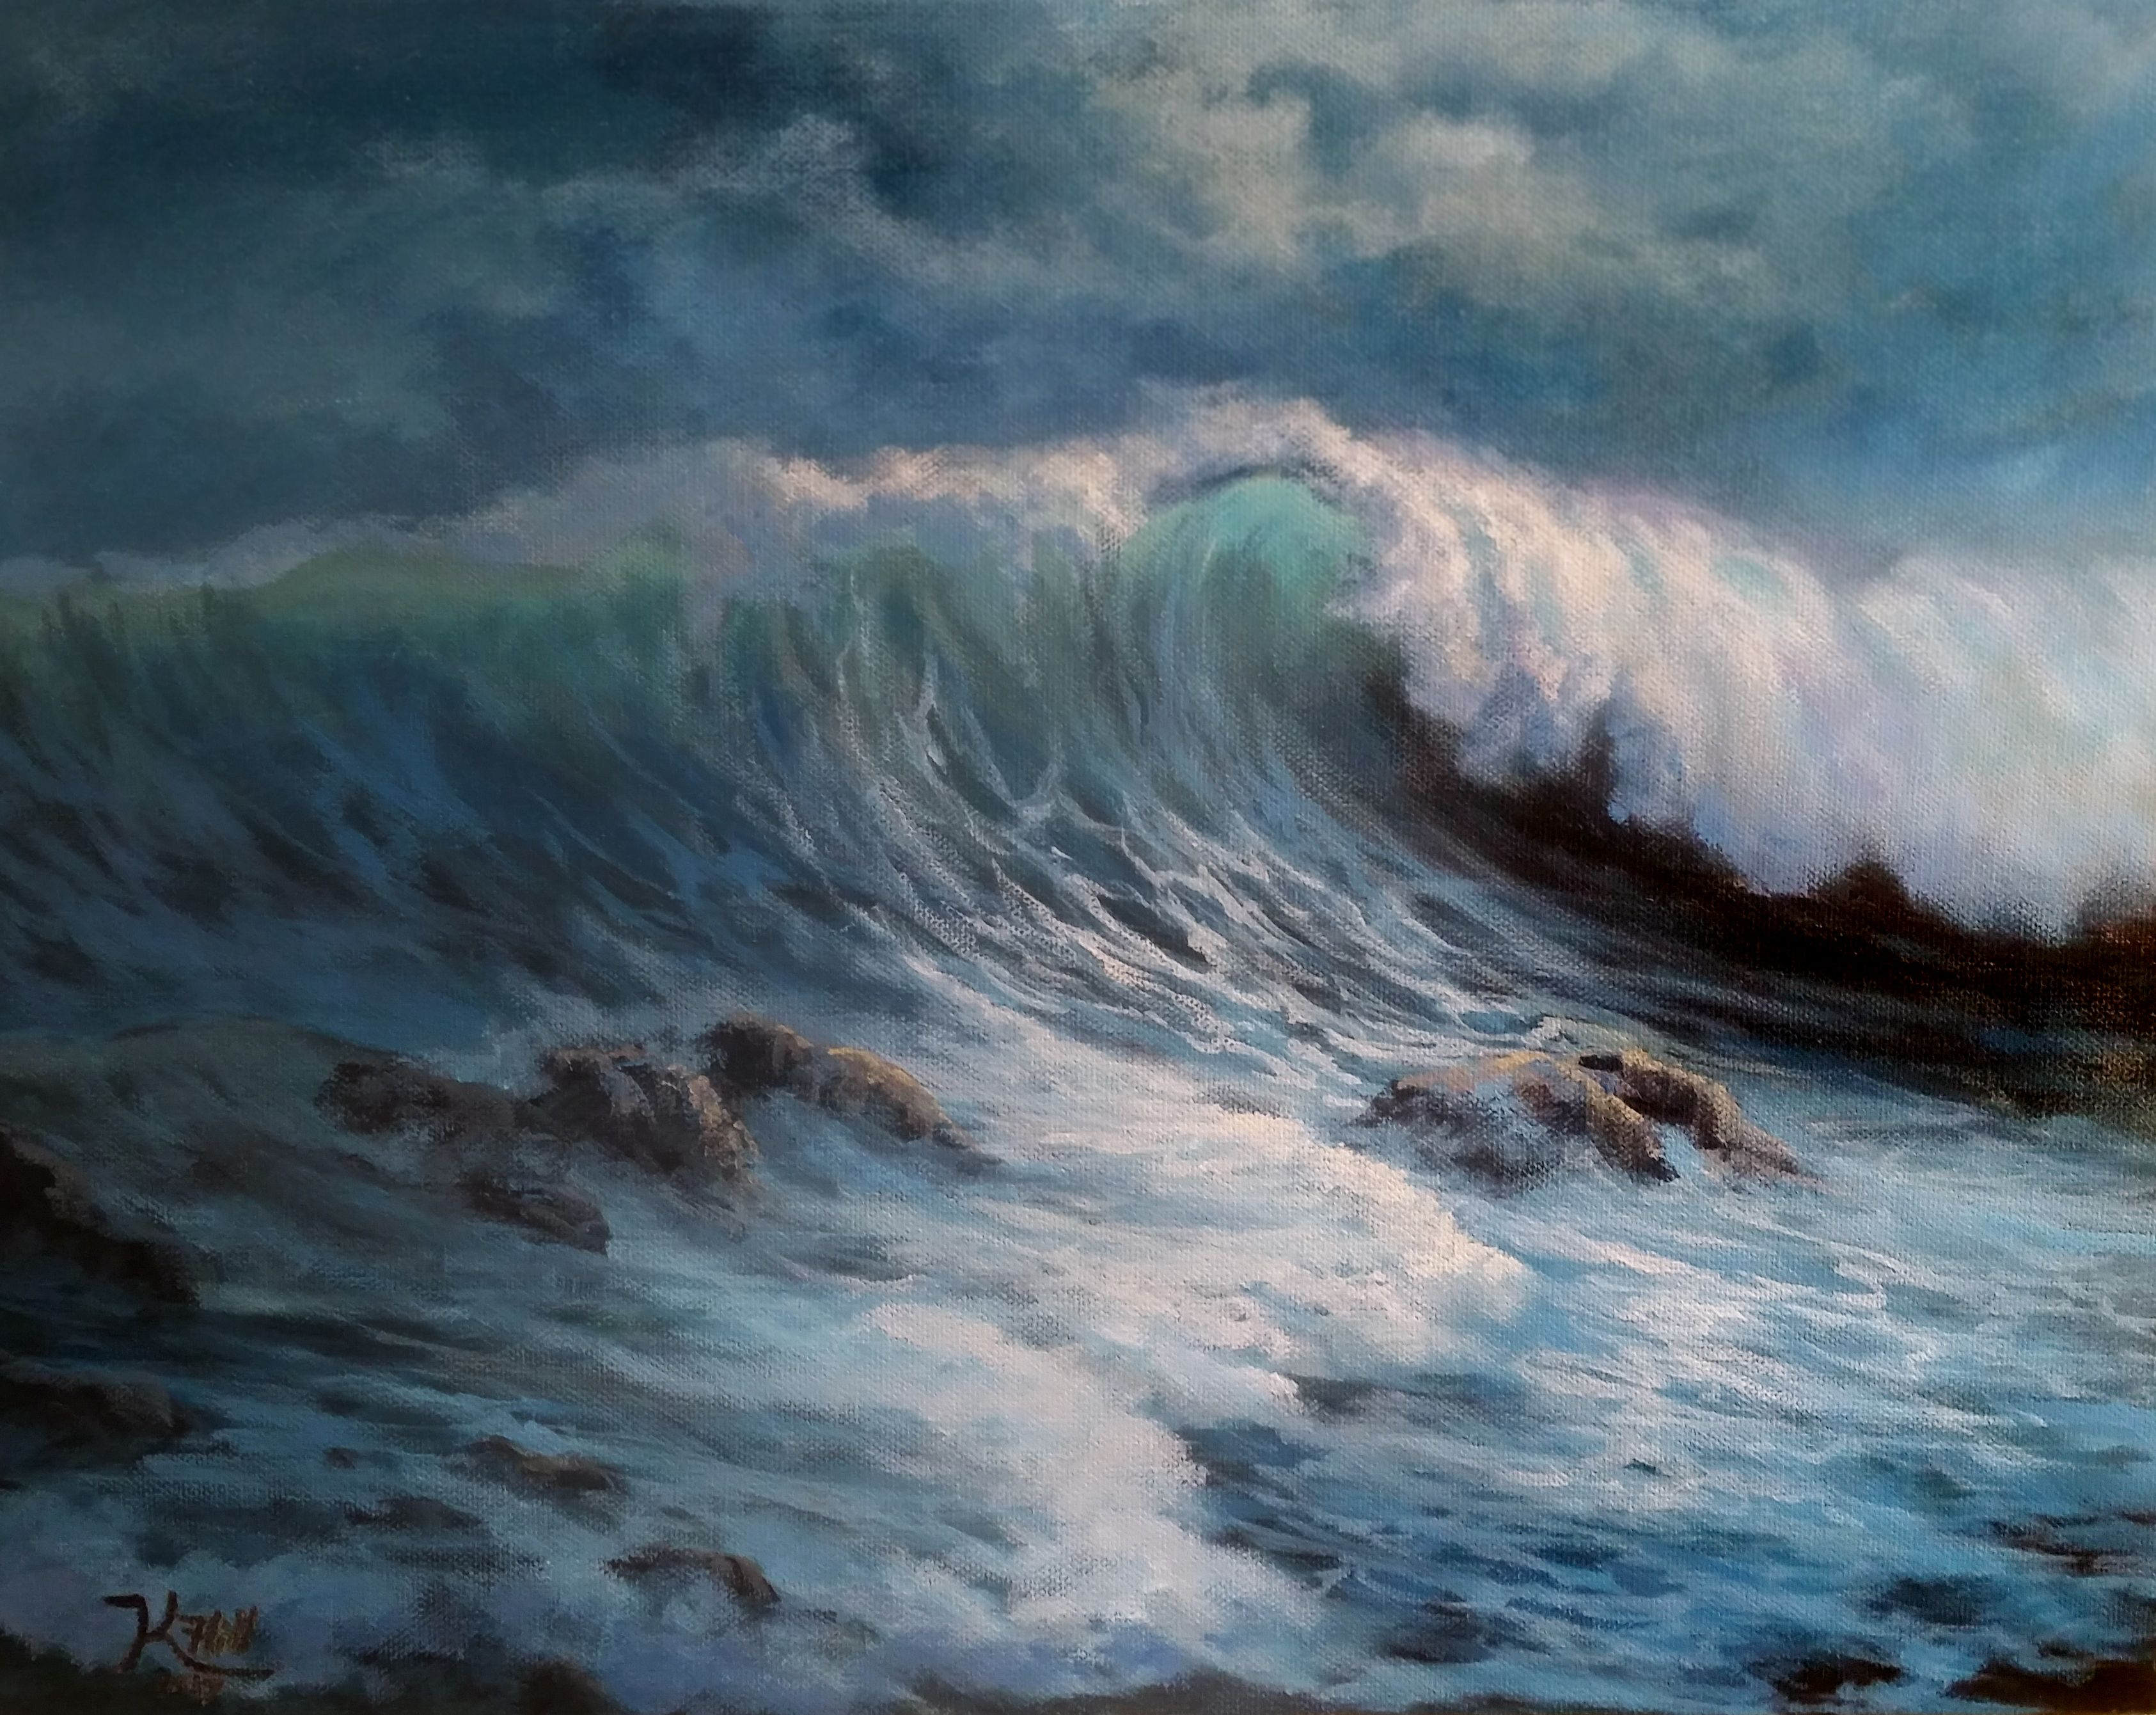 Windy Crashing Wave Acrylic Painting By Kevin Hill Watch Short Painting Lessons On Youtube Kevinoilpa Kevin Hill Paintings Landscape Art Landscape Paintings